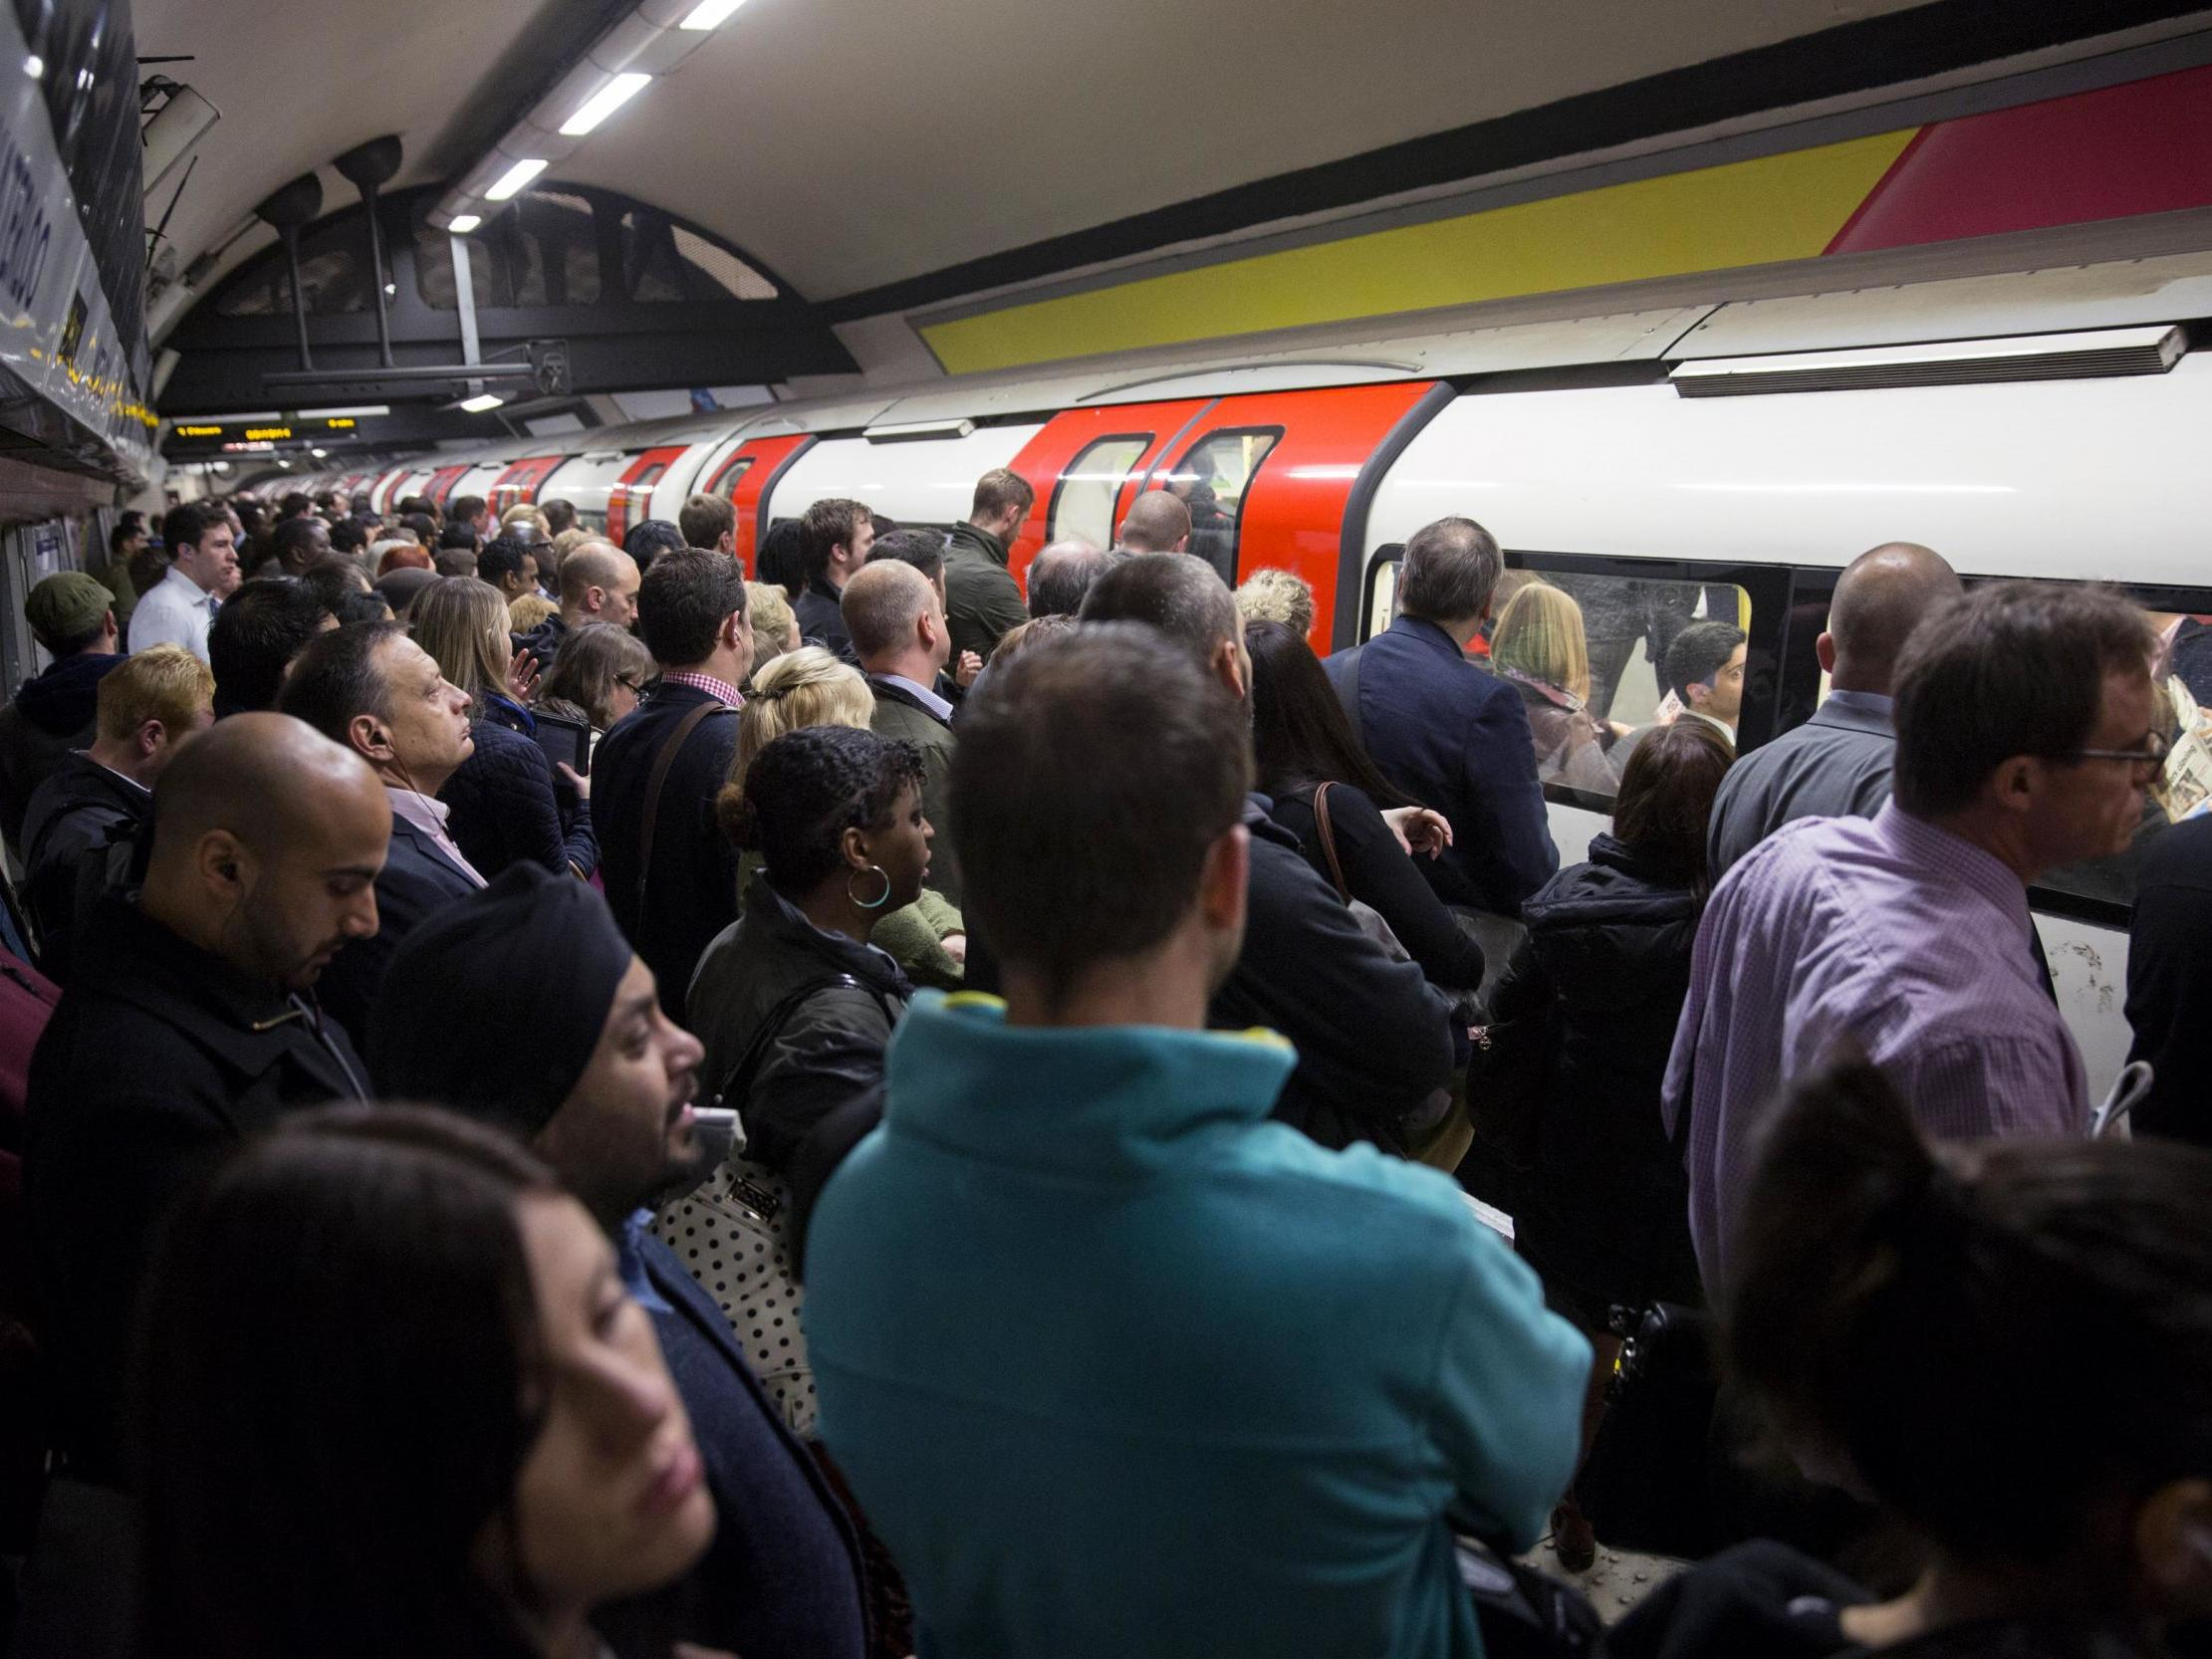 Coronavirus: London Underground a 'hotbed' for deadly ...